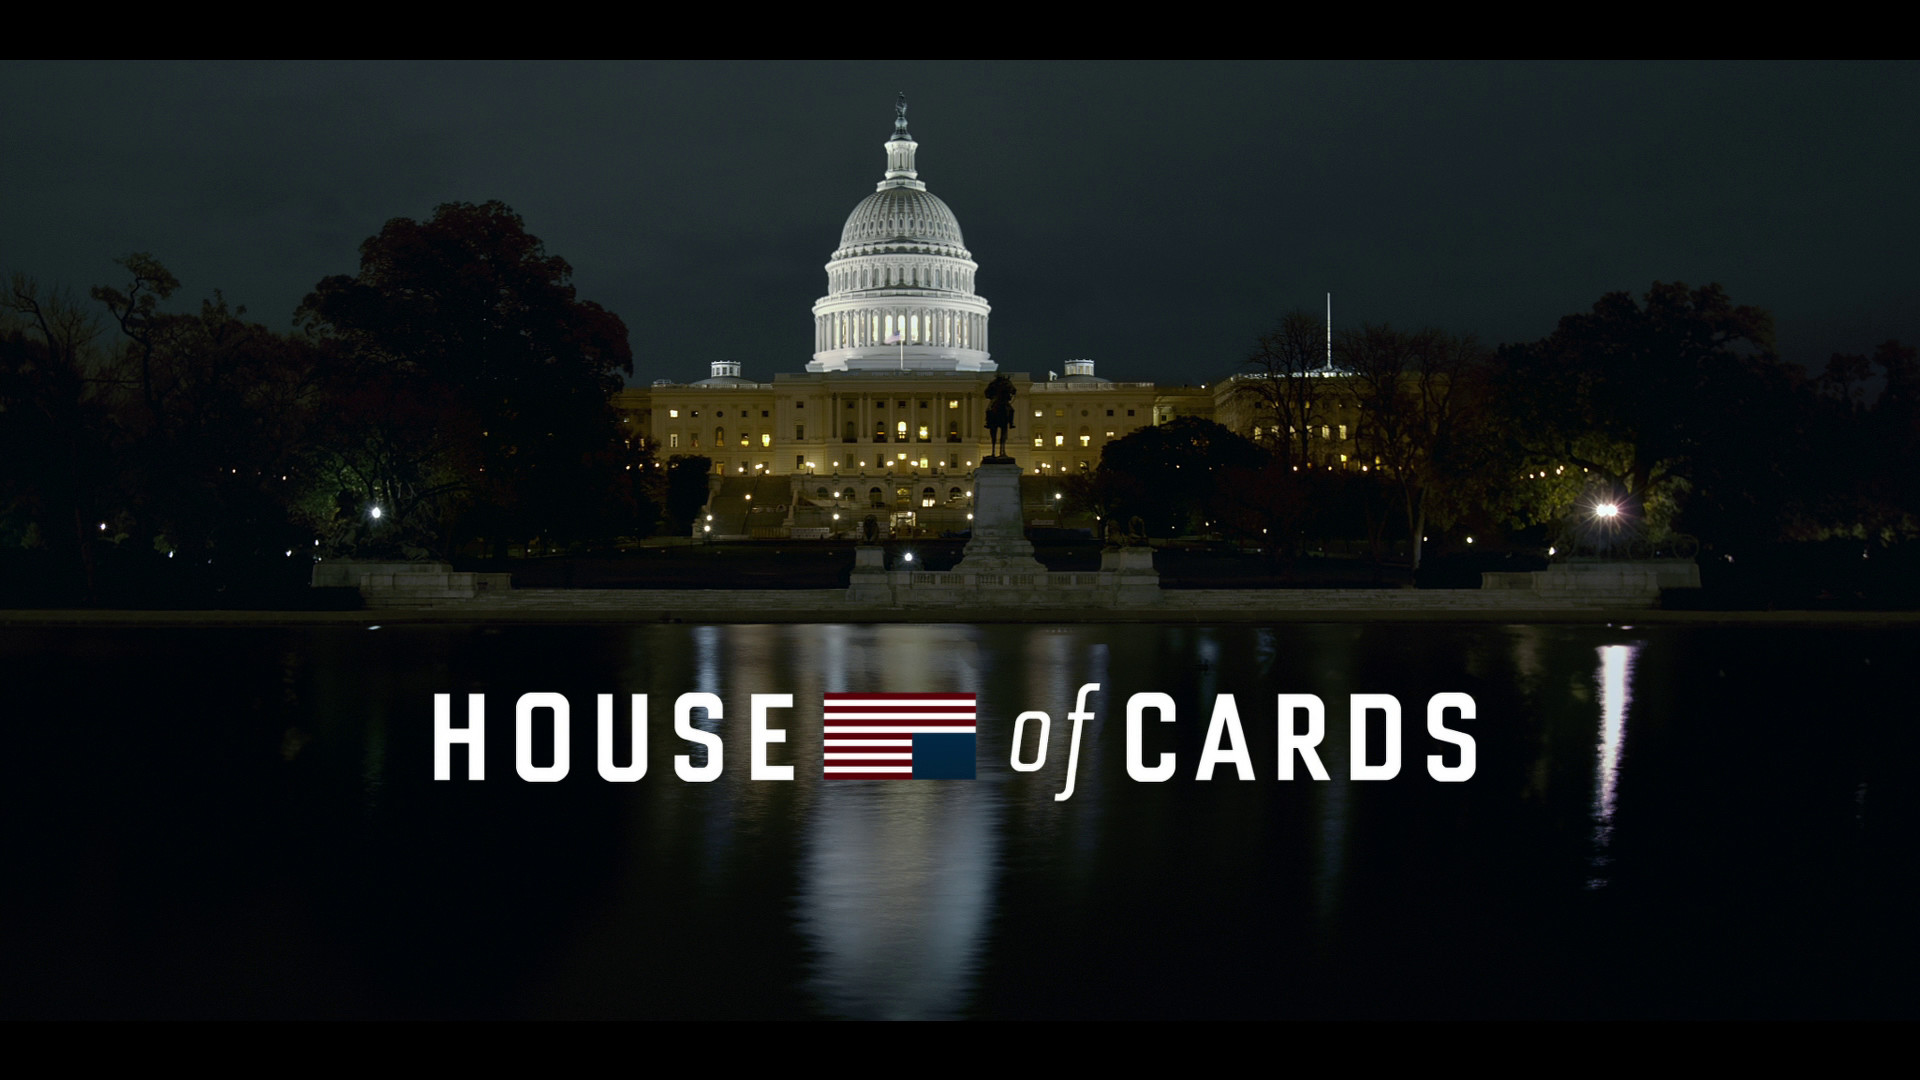 House of Cards Full HD Wallpaper 1920×1080